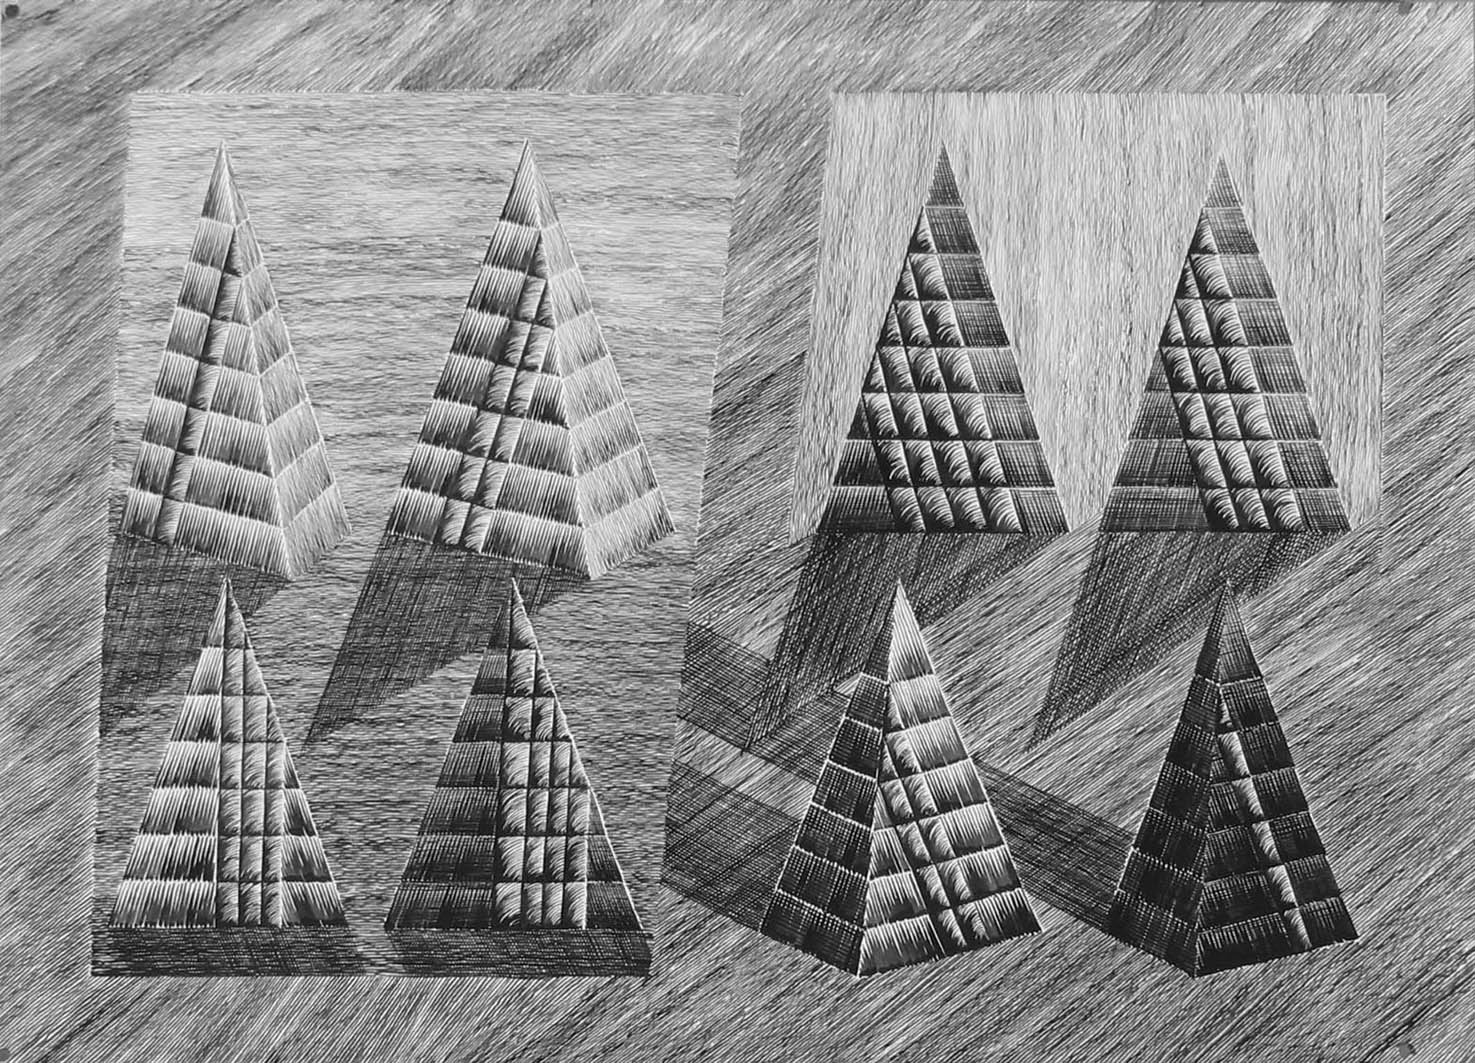 Rytm piramidalny_The Pyramid Rhytm - rys tusz_ink, 73x102,